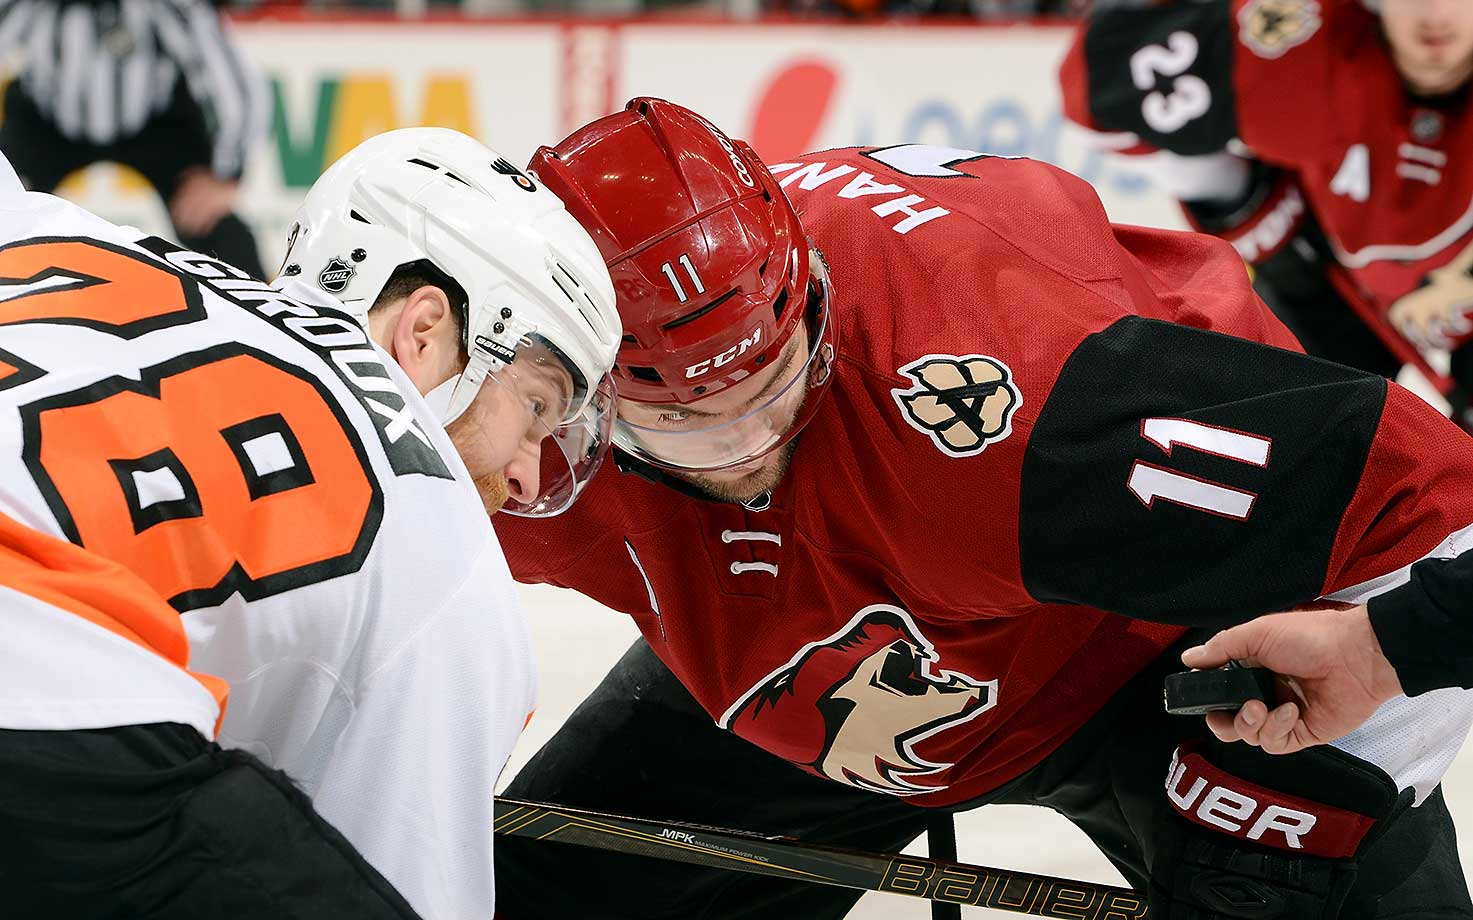 Martin Hanzal of the Arizona Coyotes and Claude Giroux of the Philadelphia Flyers prepare to take a faceoff.